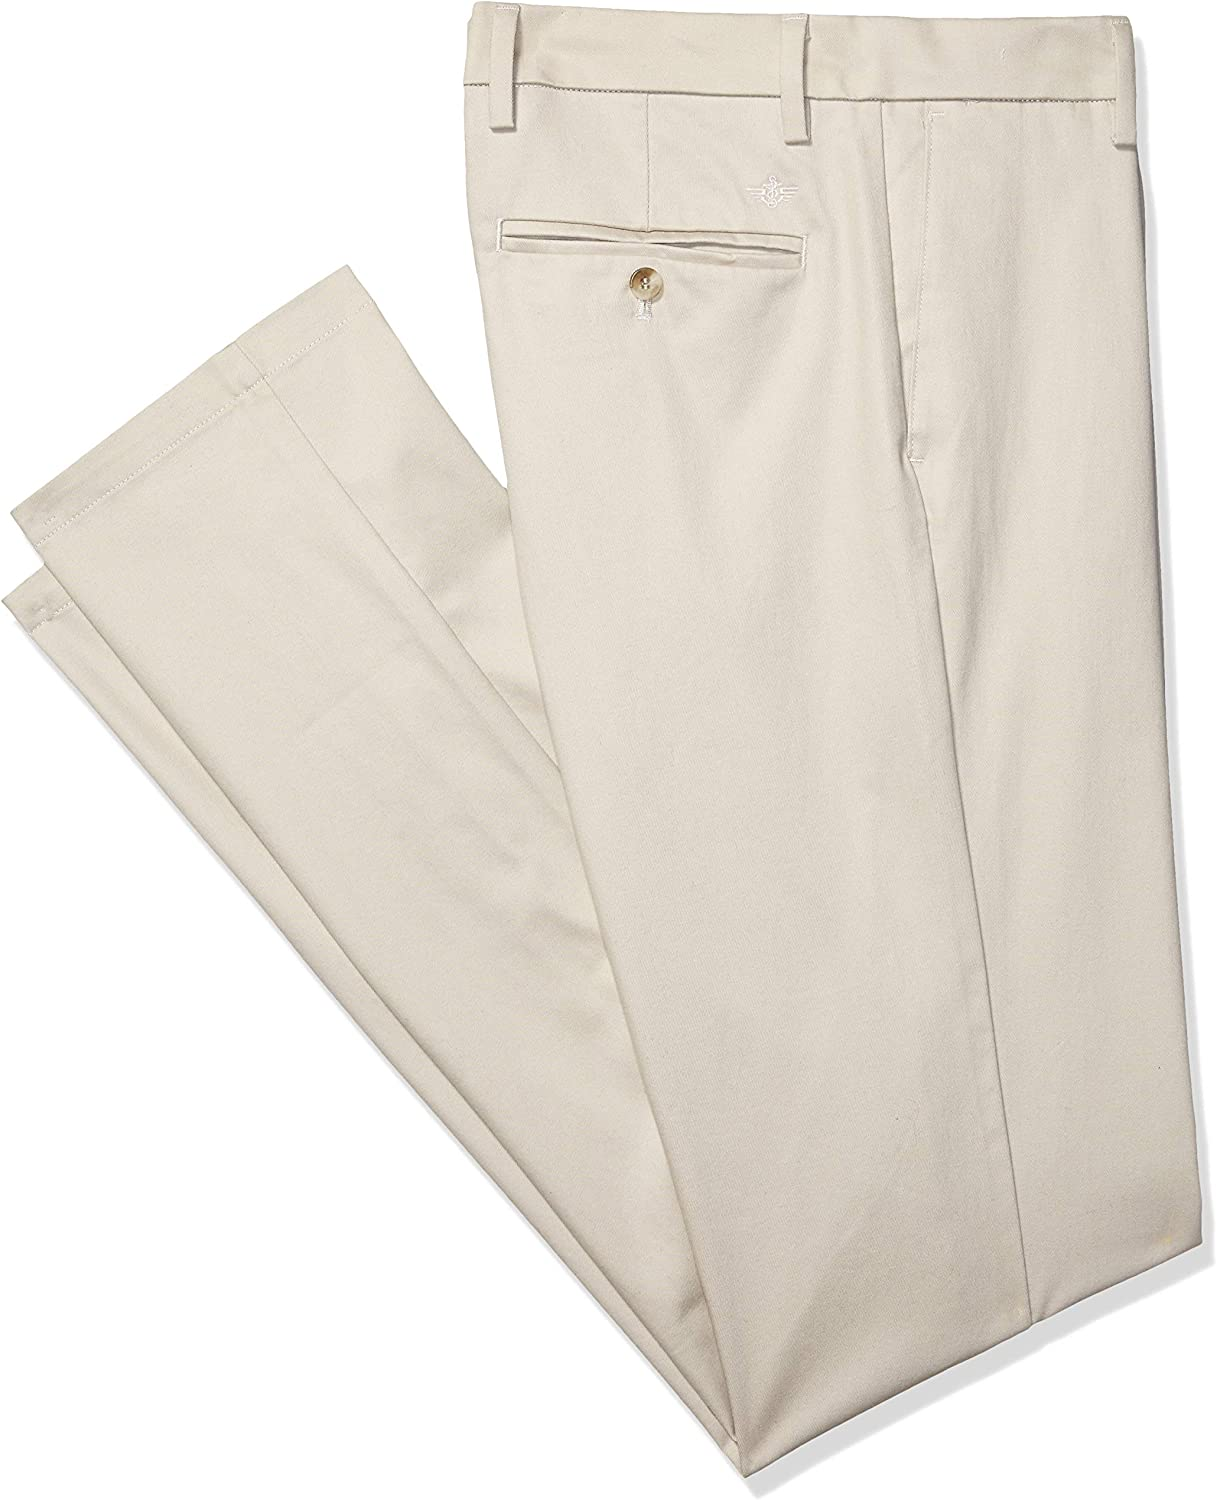 dockers Mens Big and Tall Classic Fit Signature Khaki Lux Cotton Stretch Pleated Pants